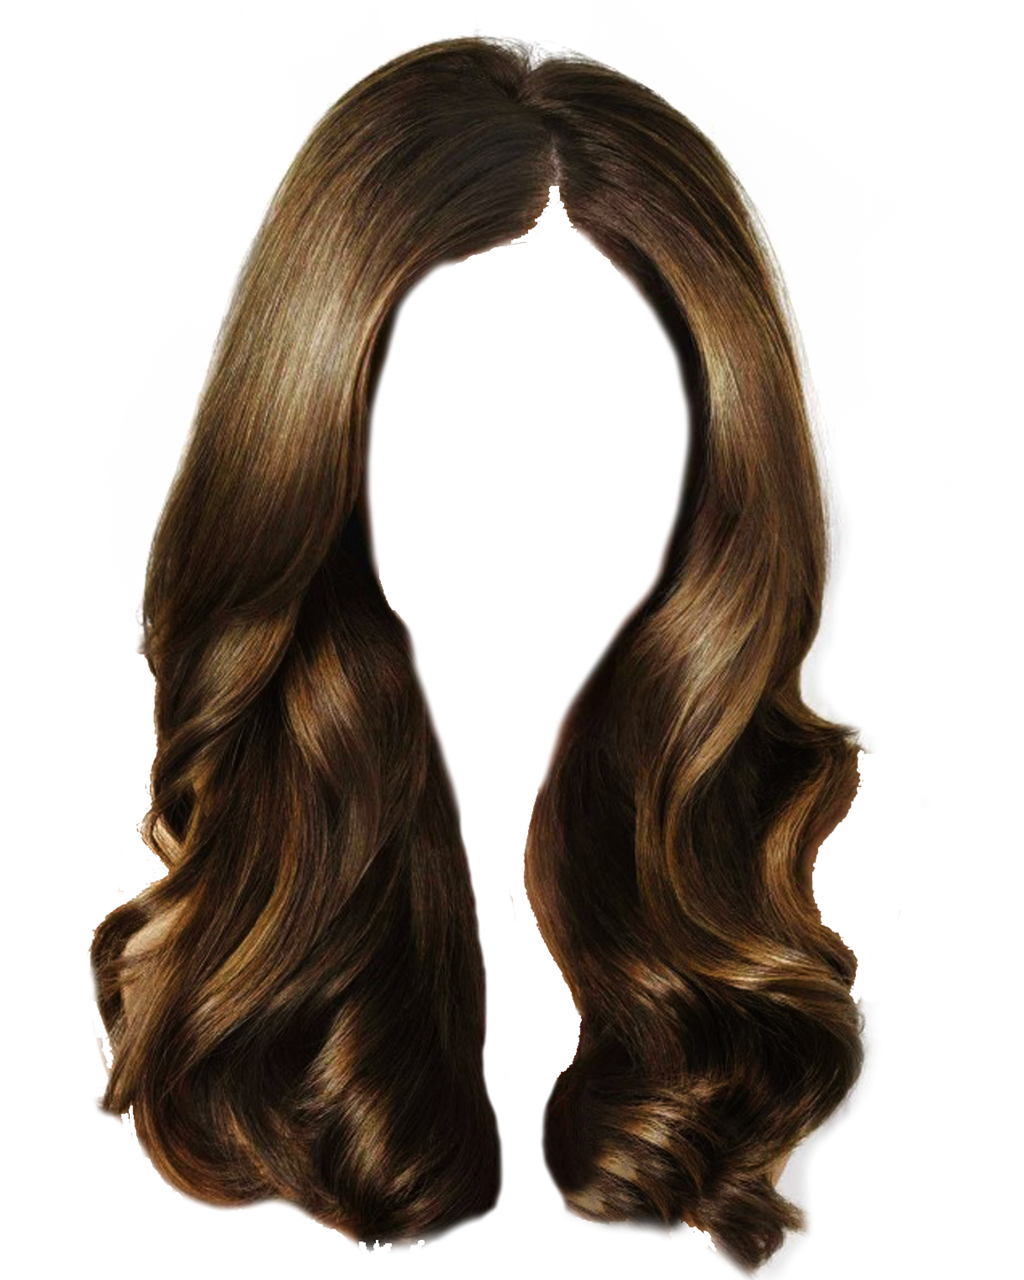 Hairstyle Png : png_hair_7_by_paradise234-d5m16s6.png